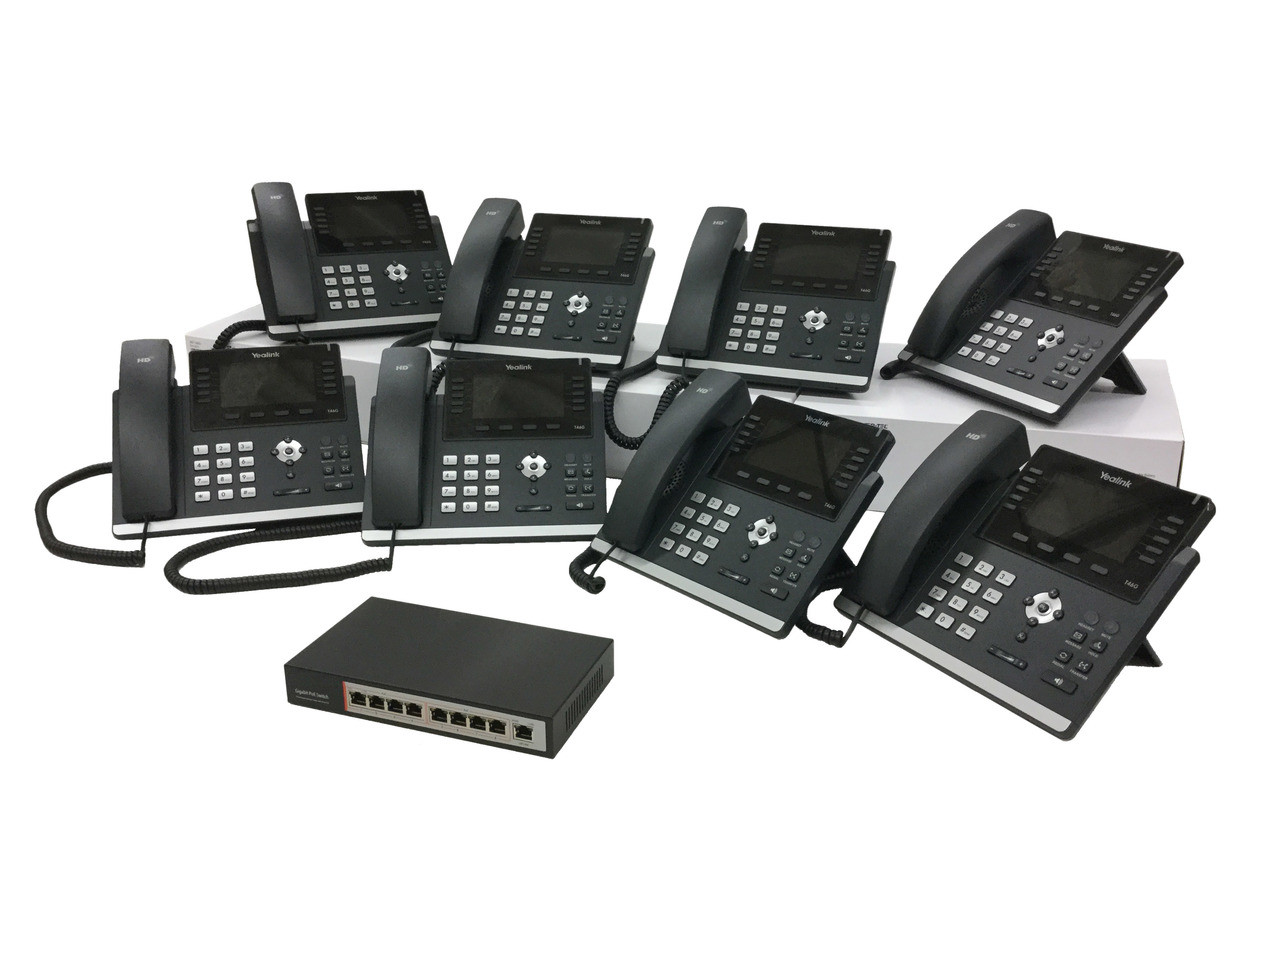 Yealink Ultra-elegant Gigabit Color Bluetooth HD Voice IP Phone w/(9-Port  POE Switch, 8 POE Ports, 8 Extra Coil Cords) Part# SIP-T46G - NEW